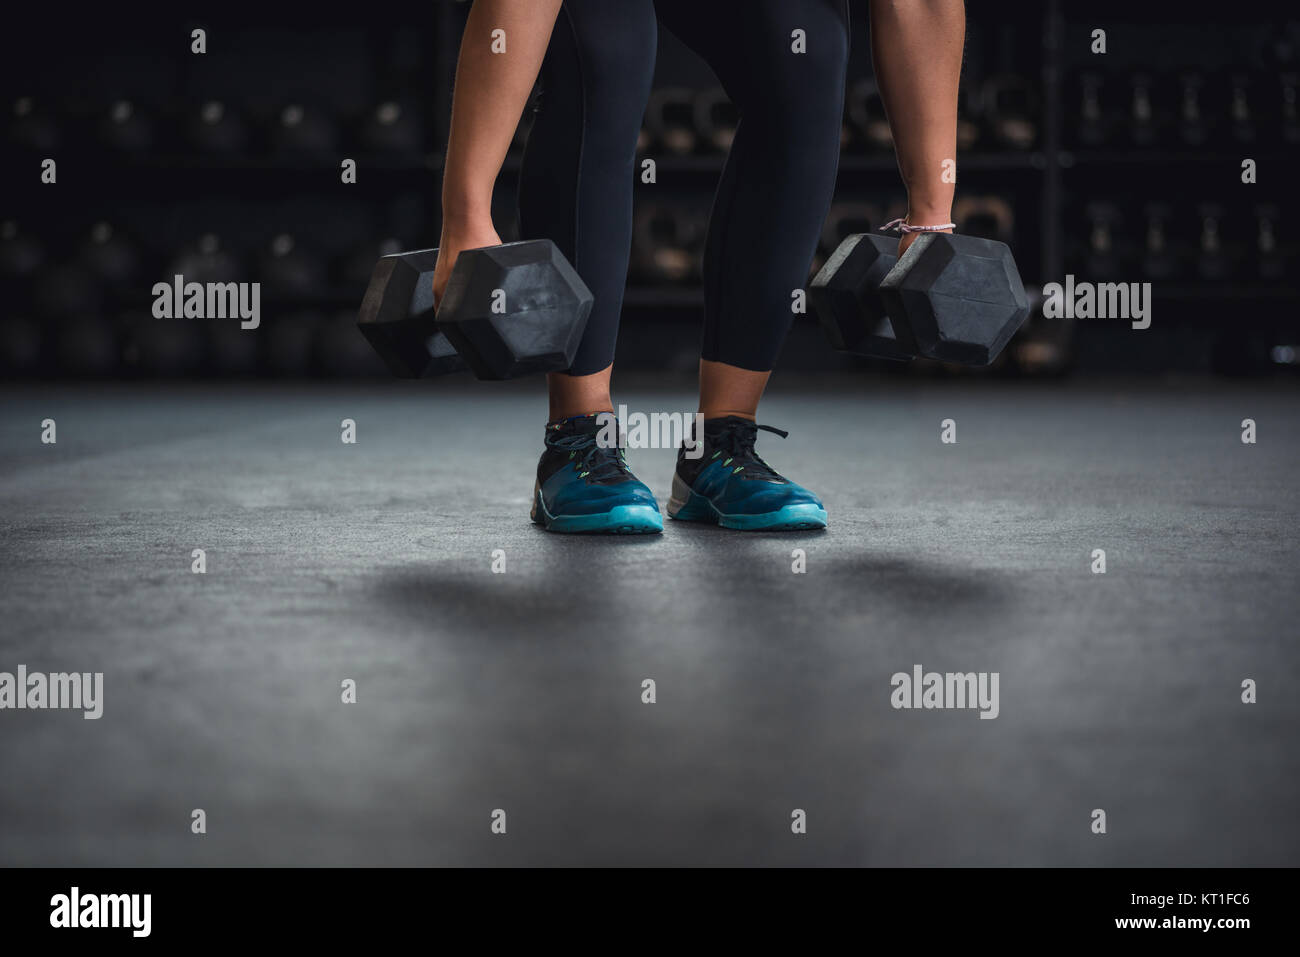 Ethnic woman working out in gym with kettlebells. - Stock Image